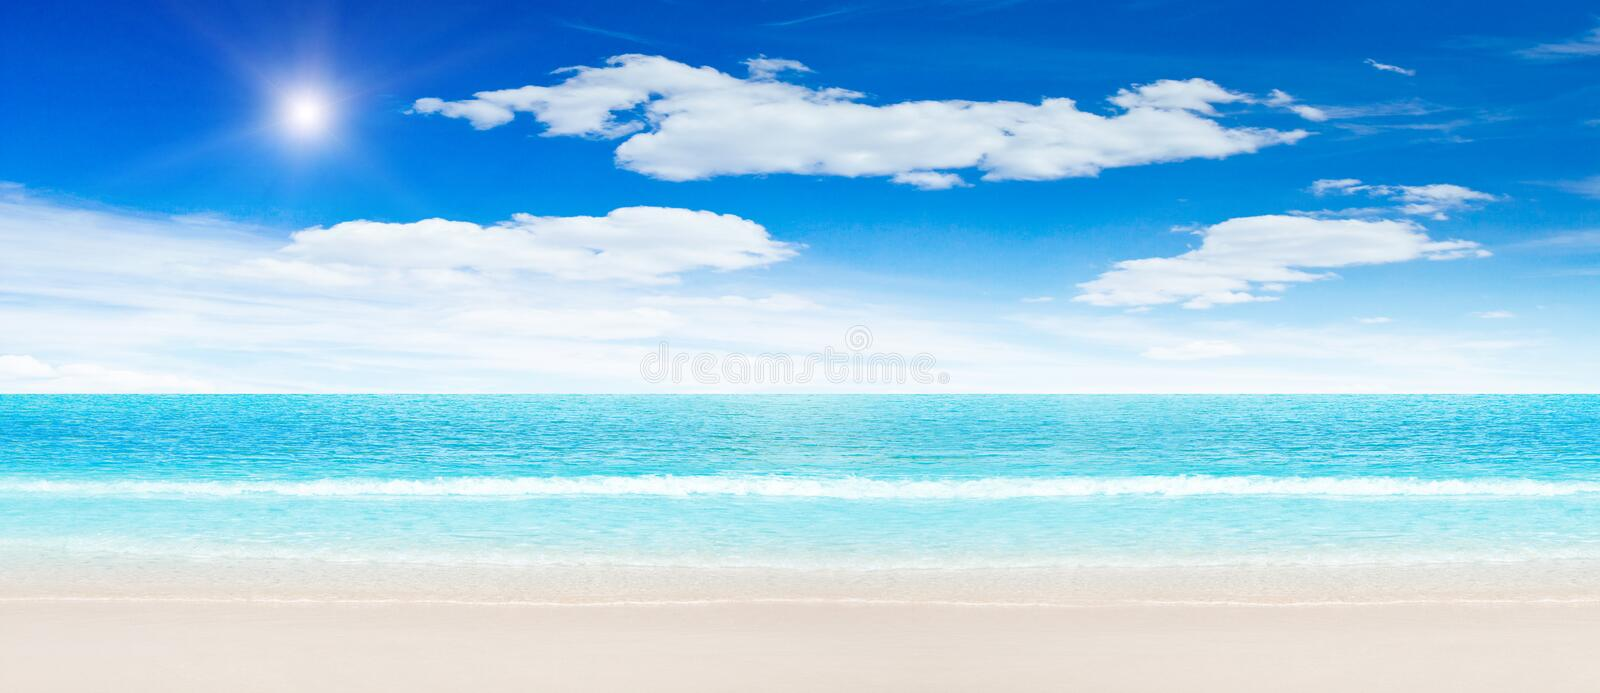 Tropical beach and ocean stock images